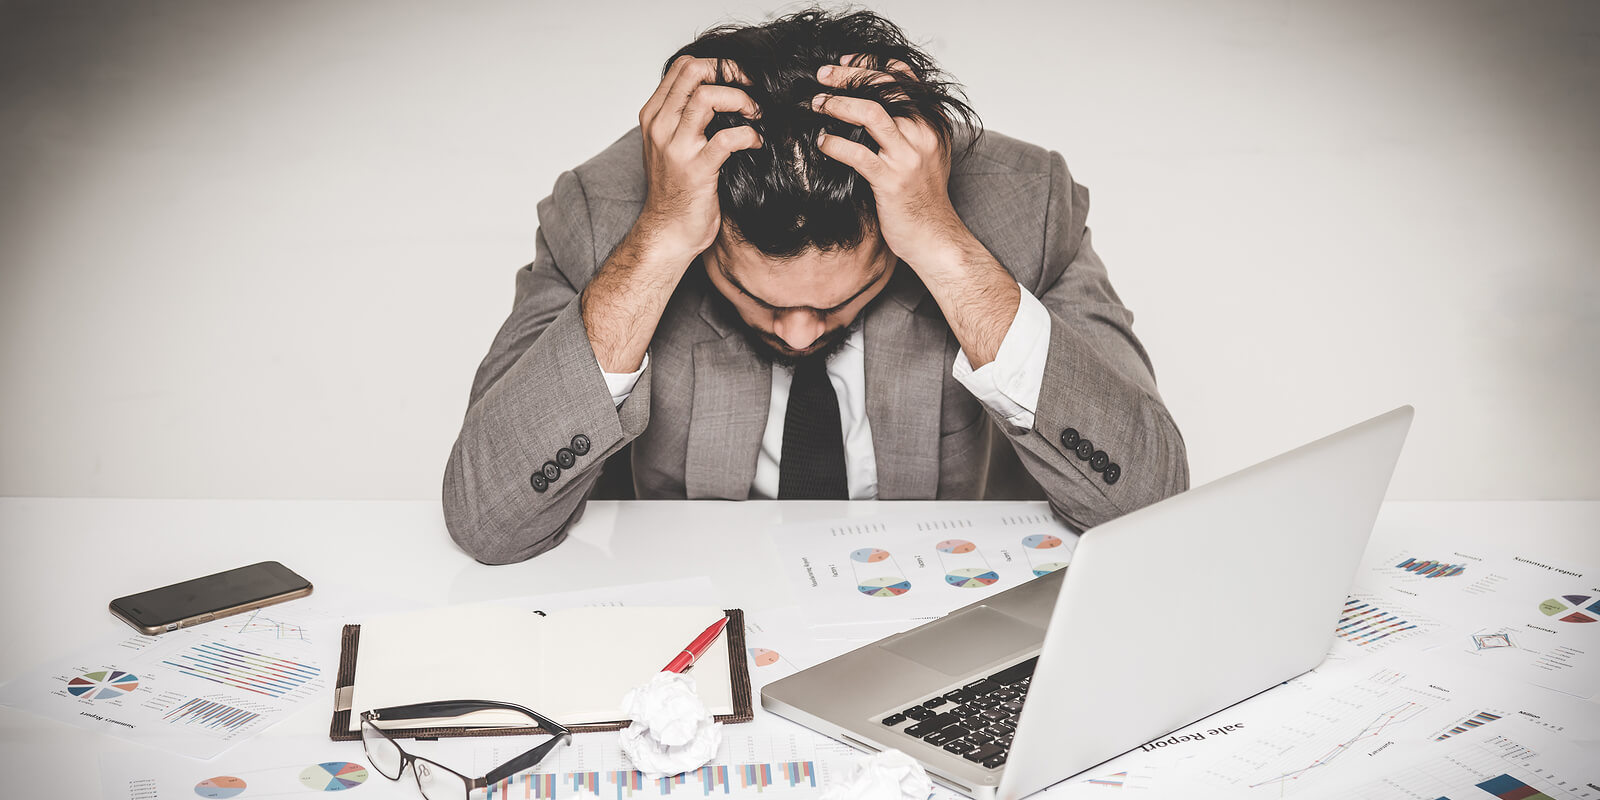 How to Deal with Burnout: 15 Useful Tips from Psychologists